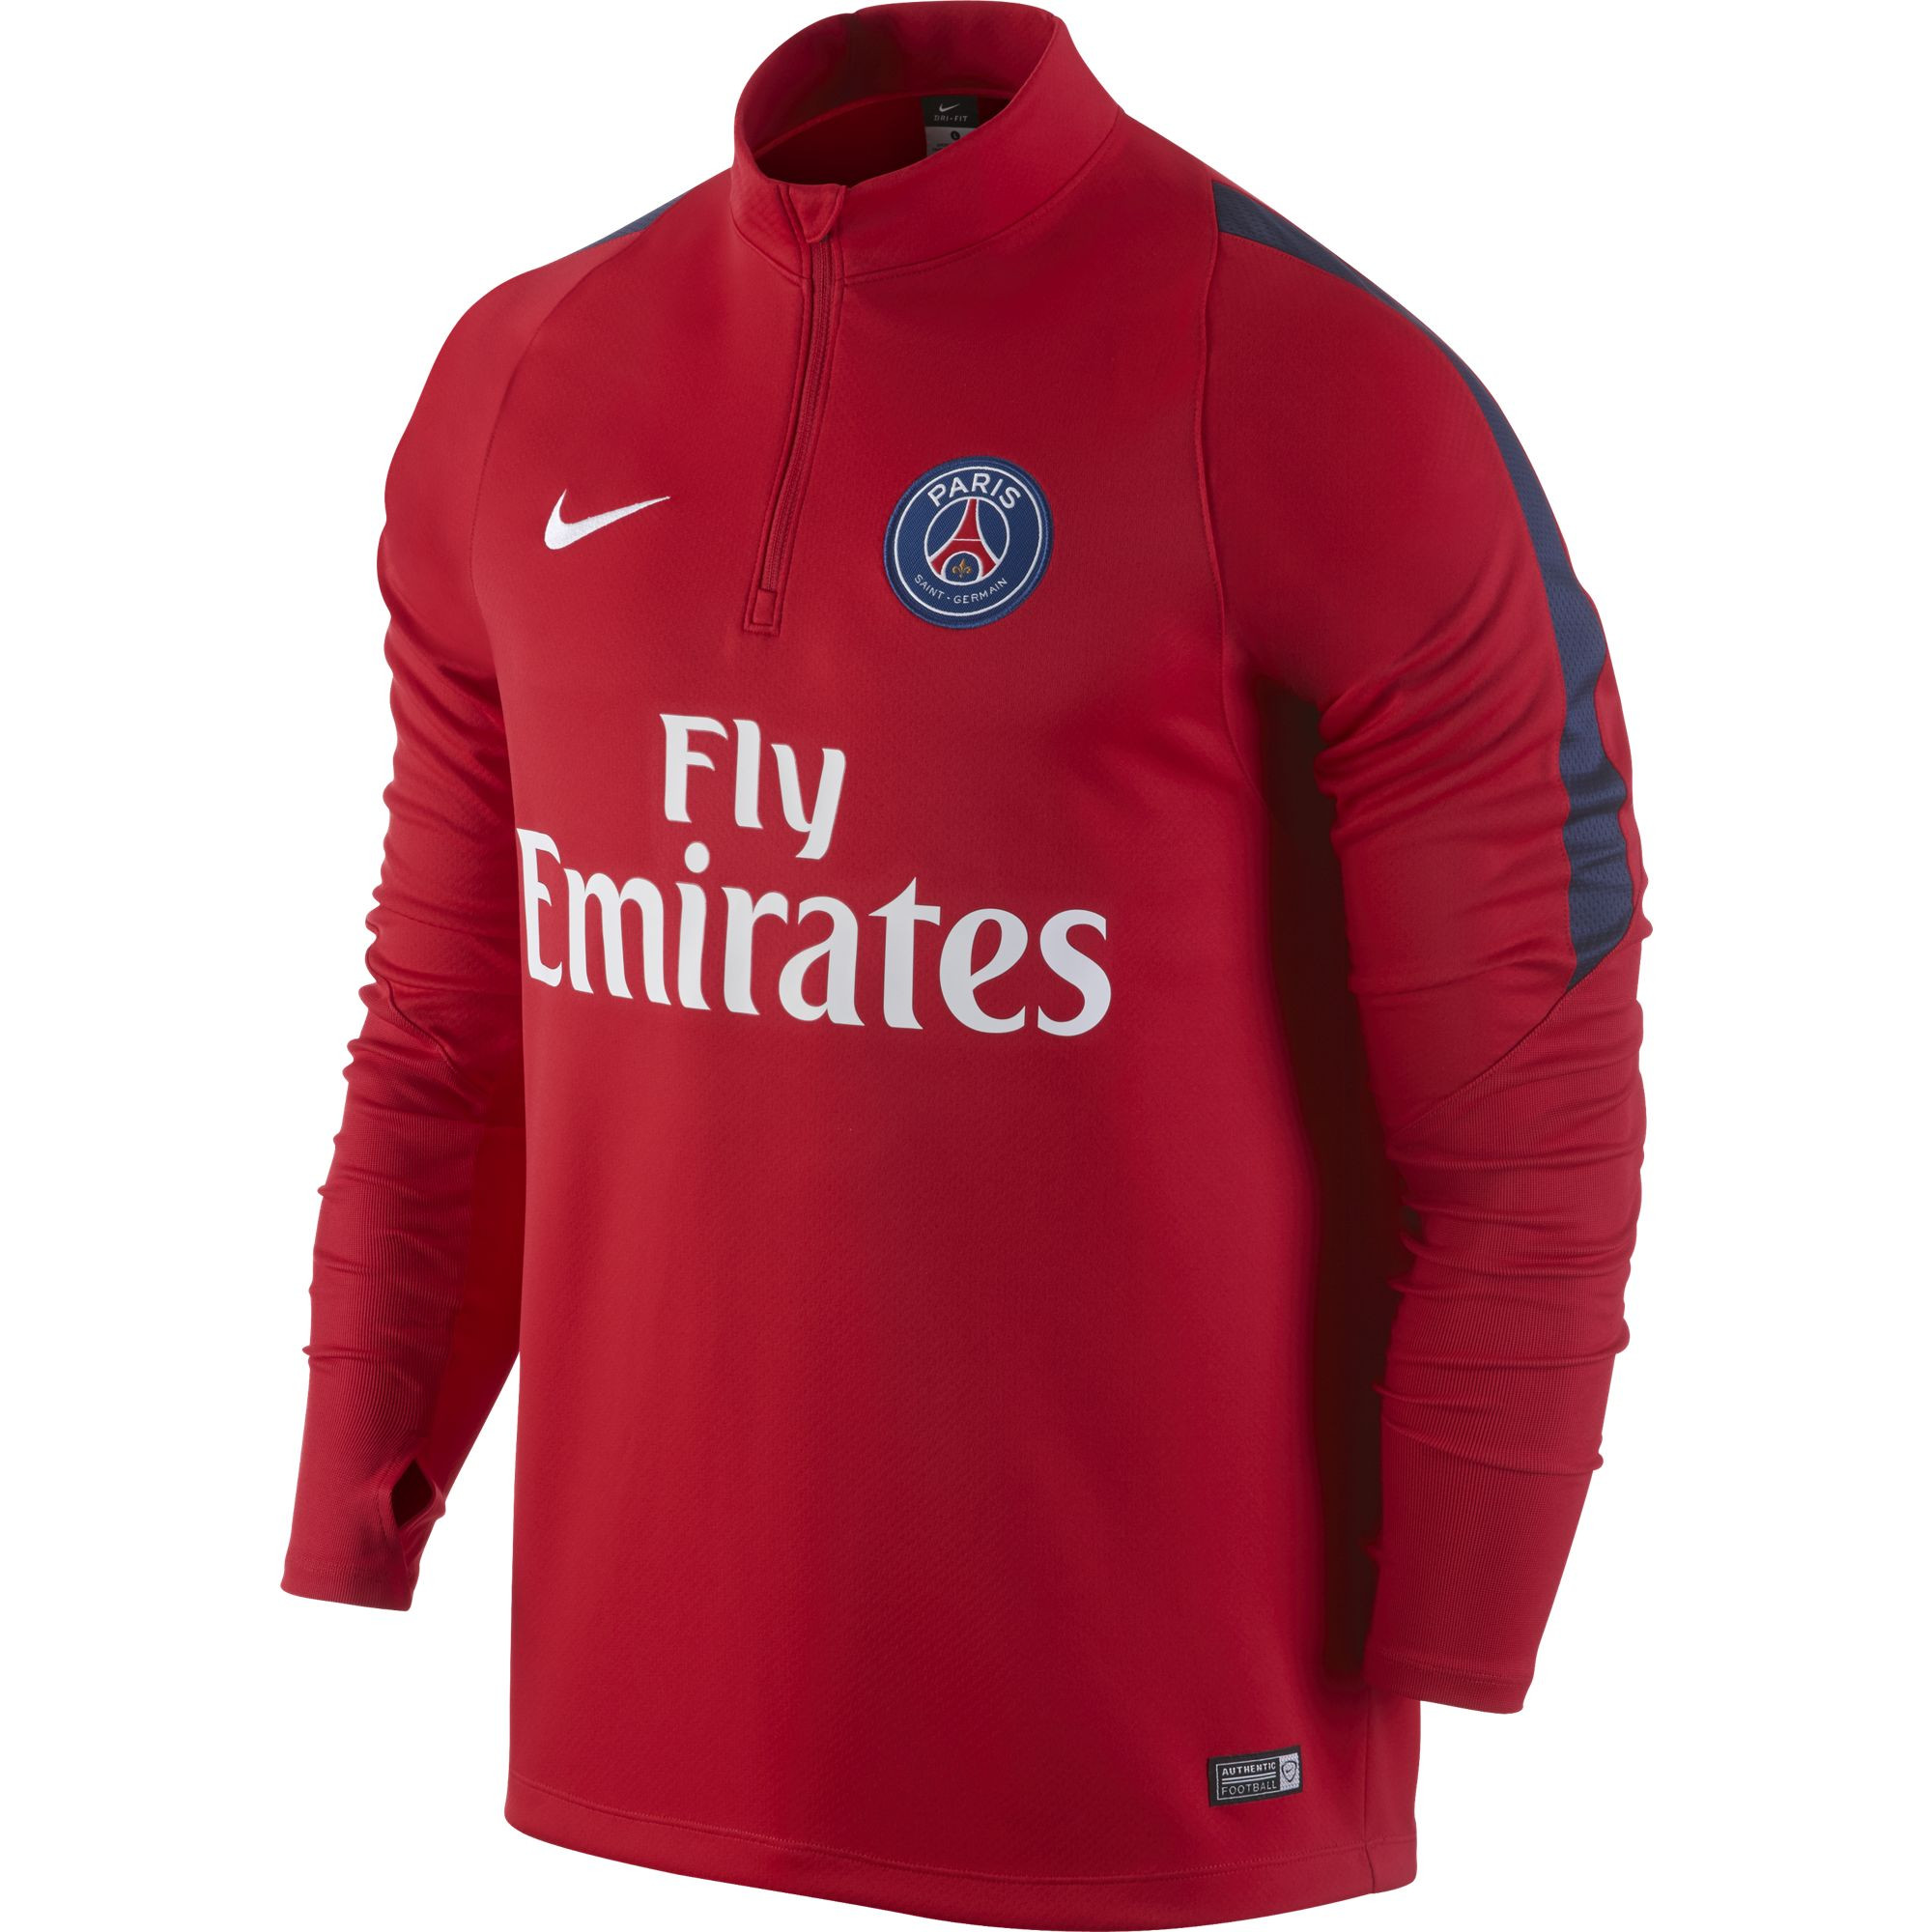 nike psg sweat entrainement rouge 2016 psg club francais. Black Bedroom Furniture Sets. Home Design Ideas